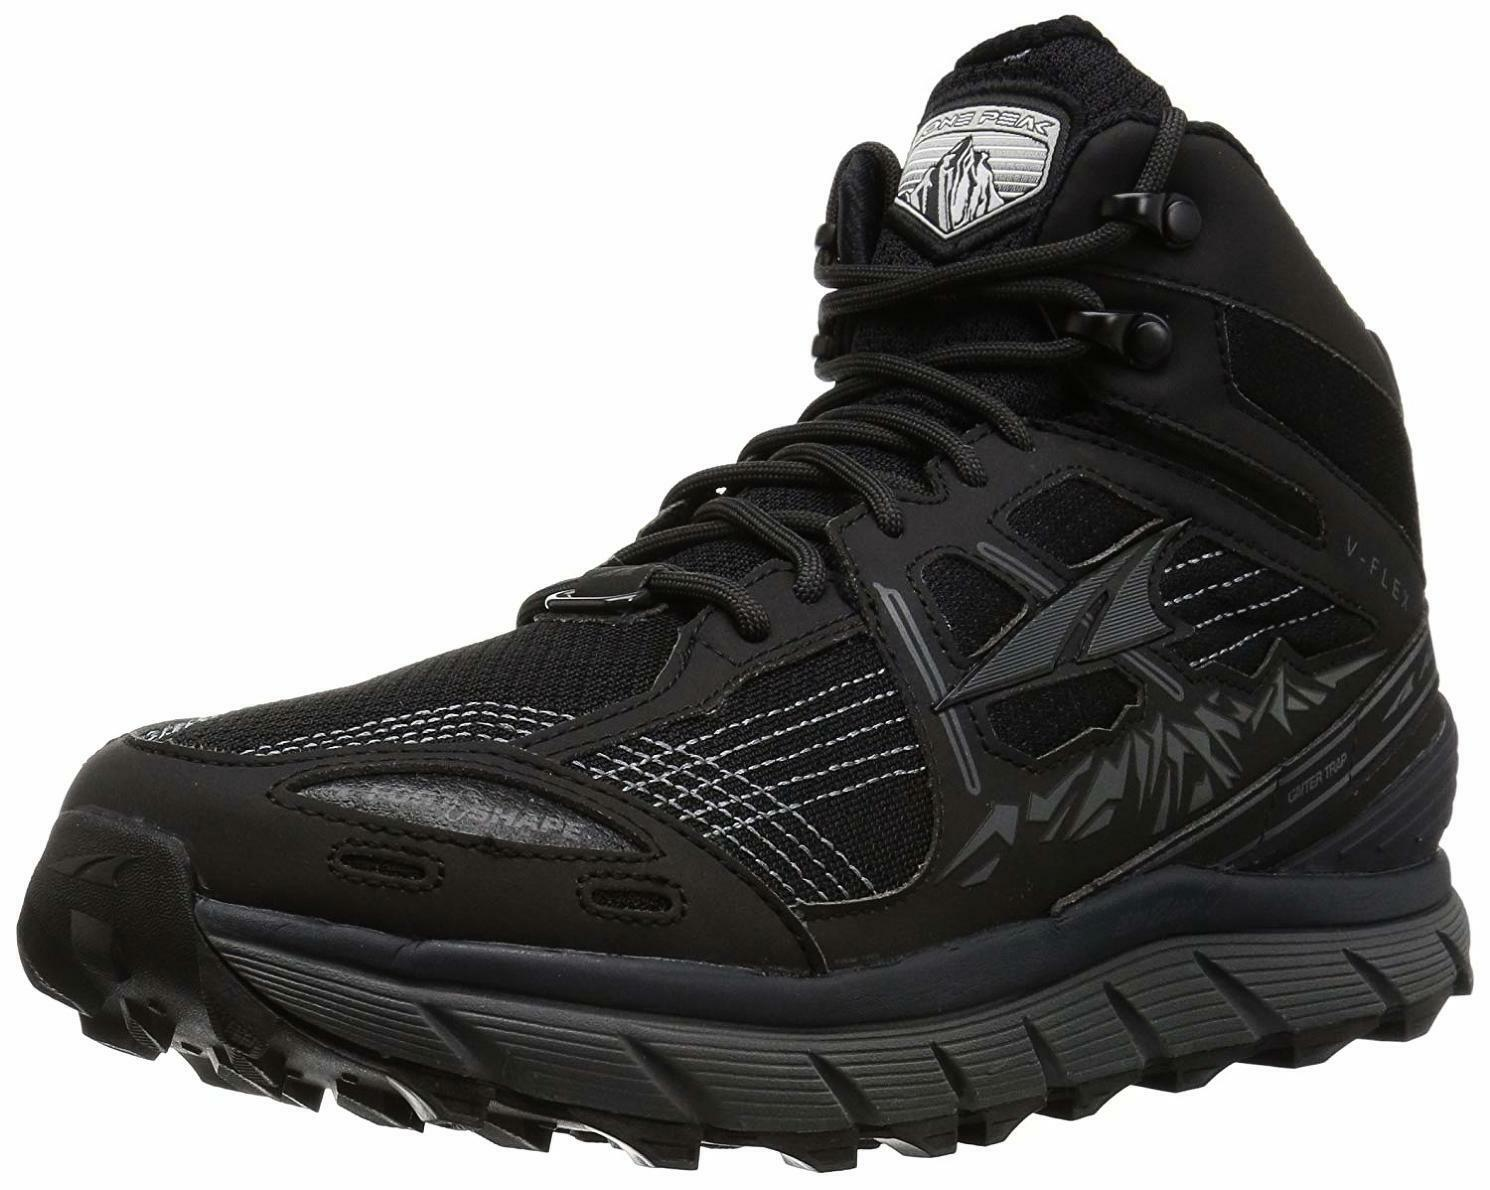 Altra Men's Lone Peak 3.5 Mid Mesh Athletic shoes - Choose SZ color